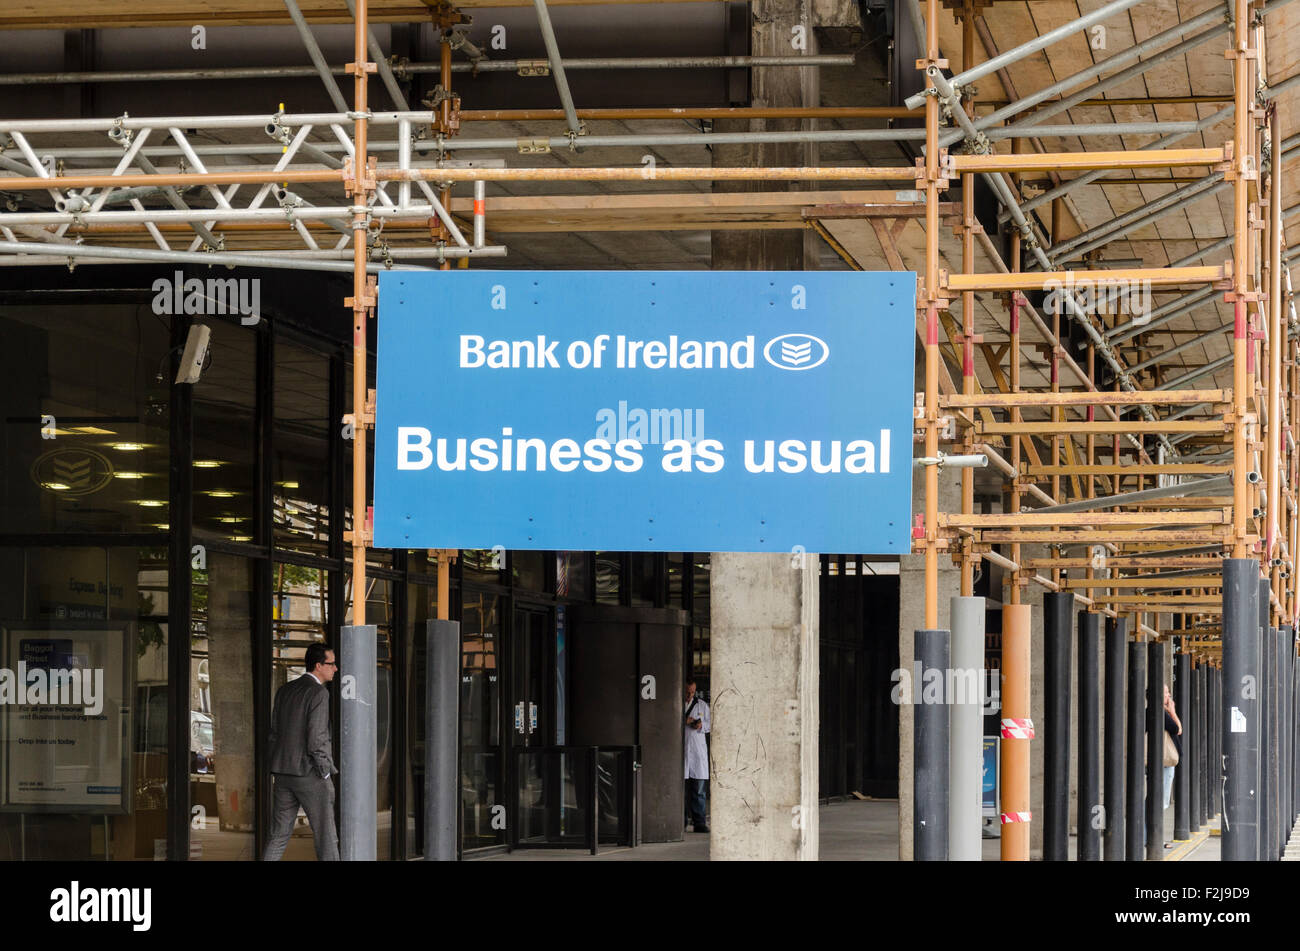 Bank of Ireland 'Business as Usual' sign. Dublin, Ireland - Stock Image